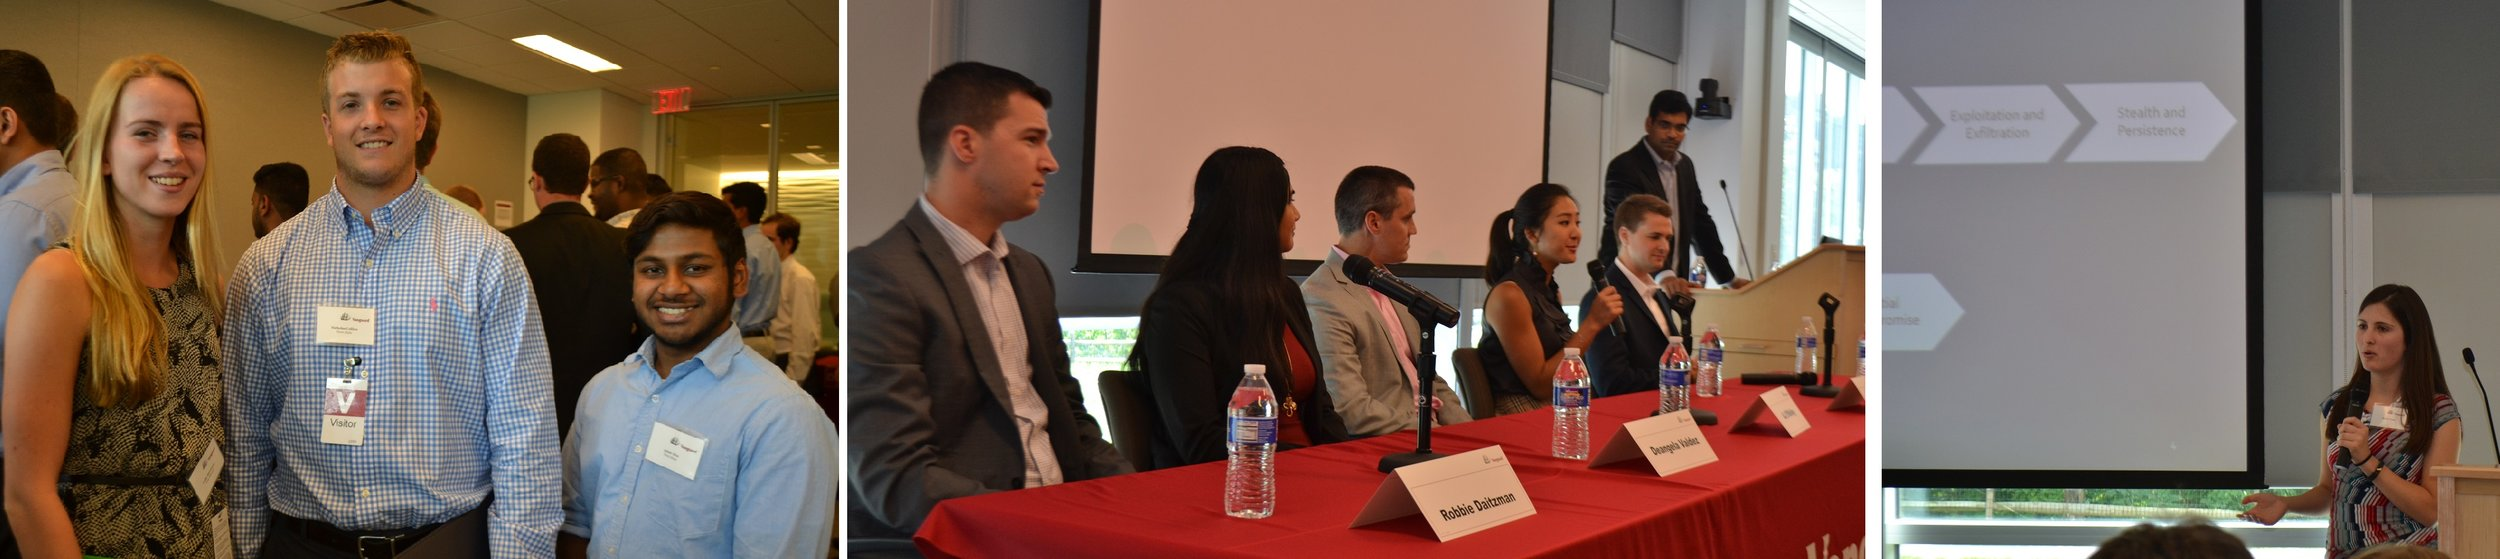 L-R: Student attendees, panel of recently hired team members, and cybersecurity presentation